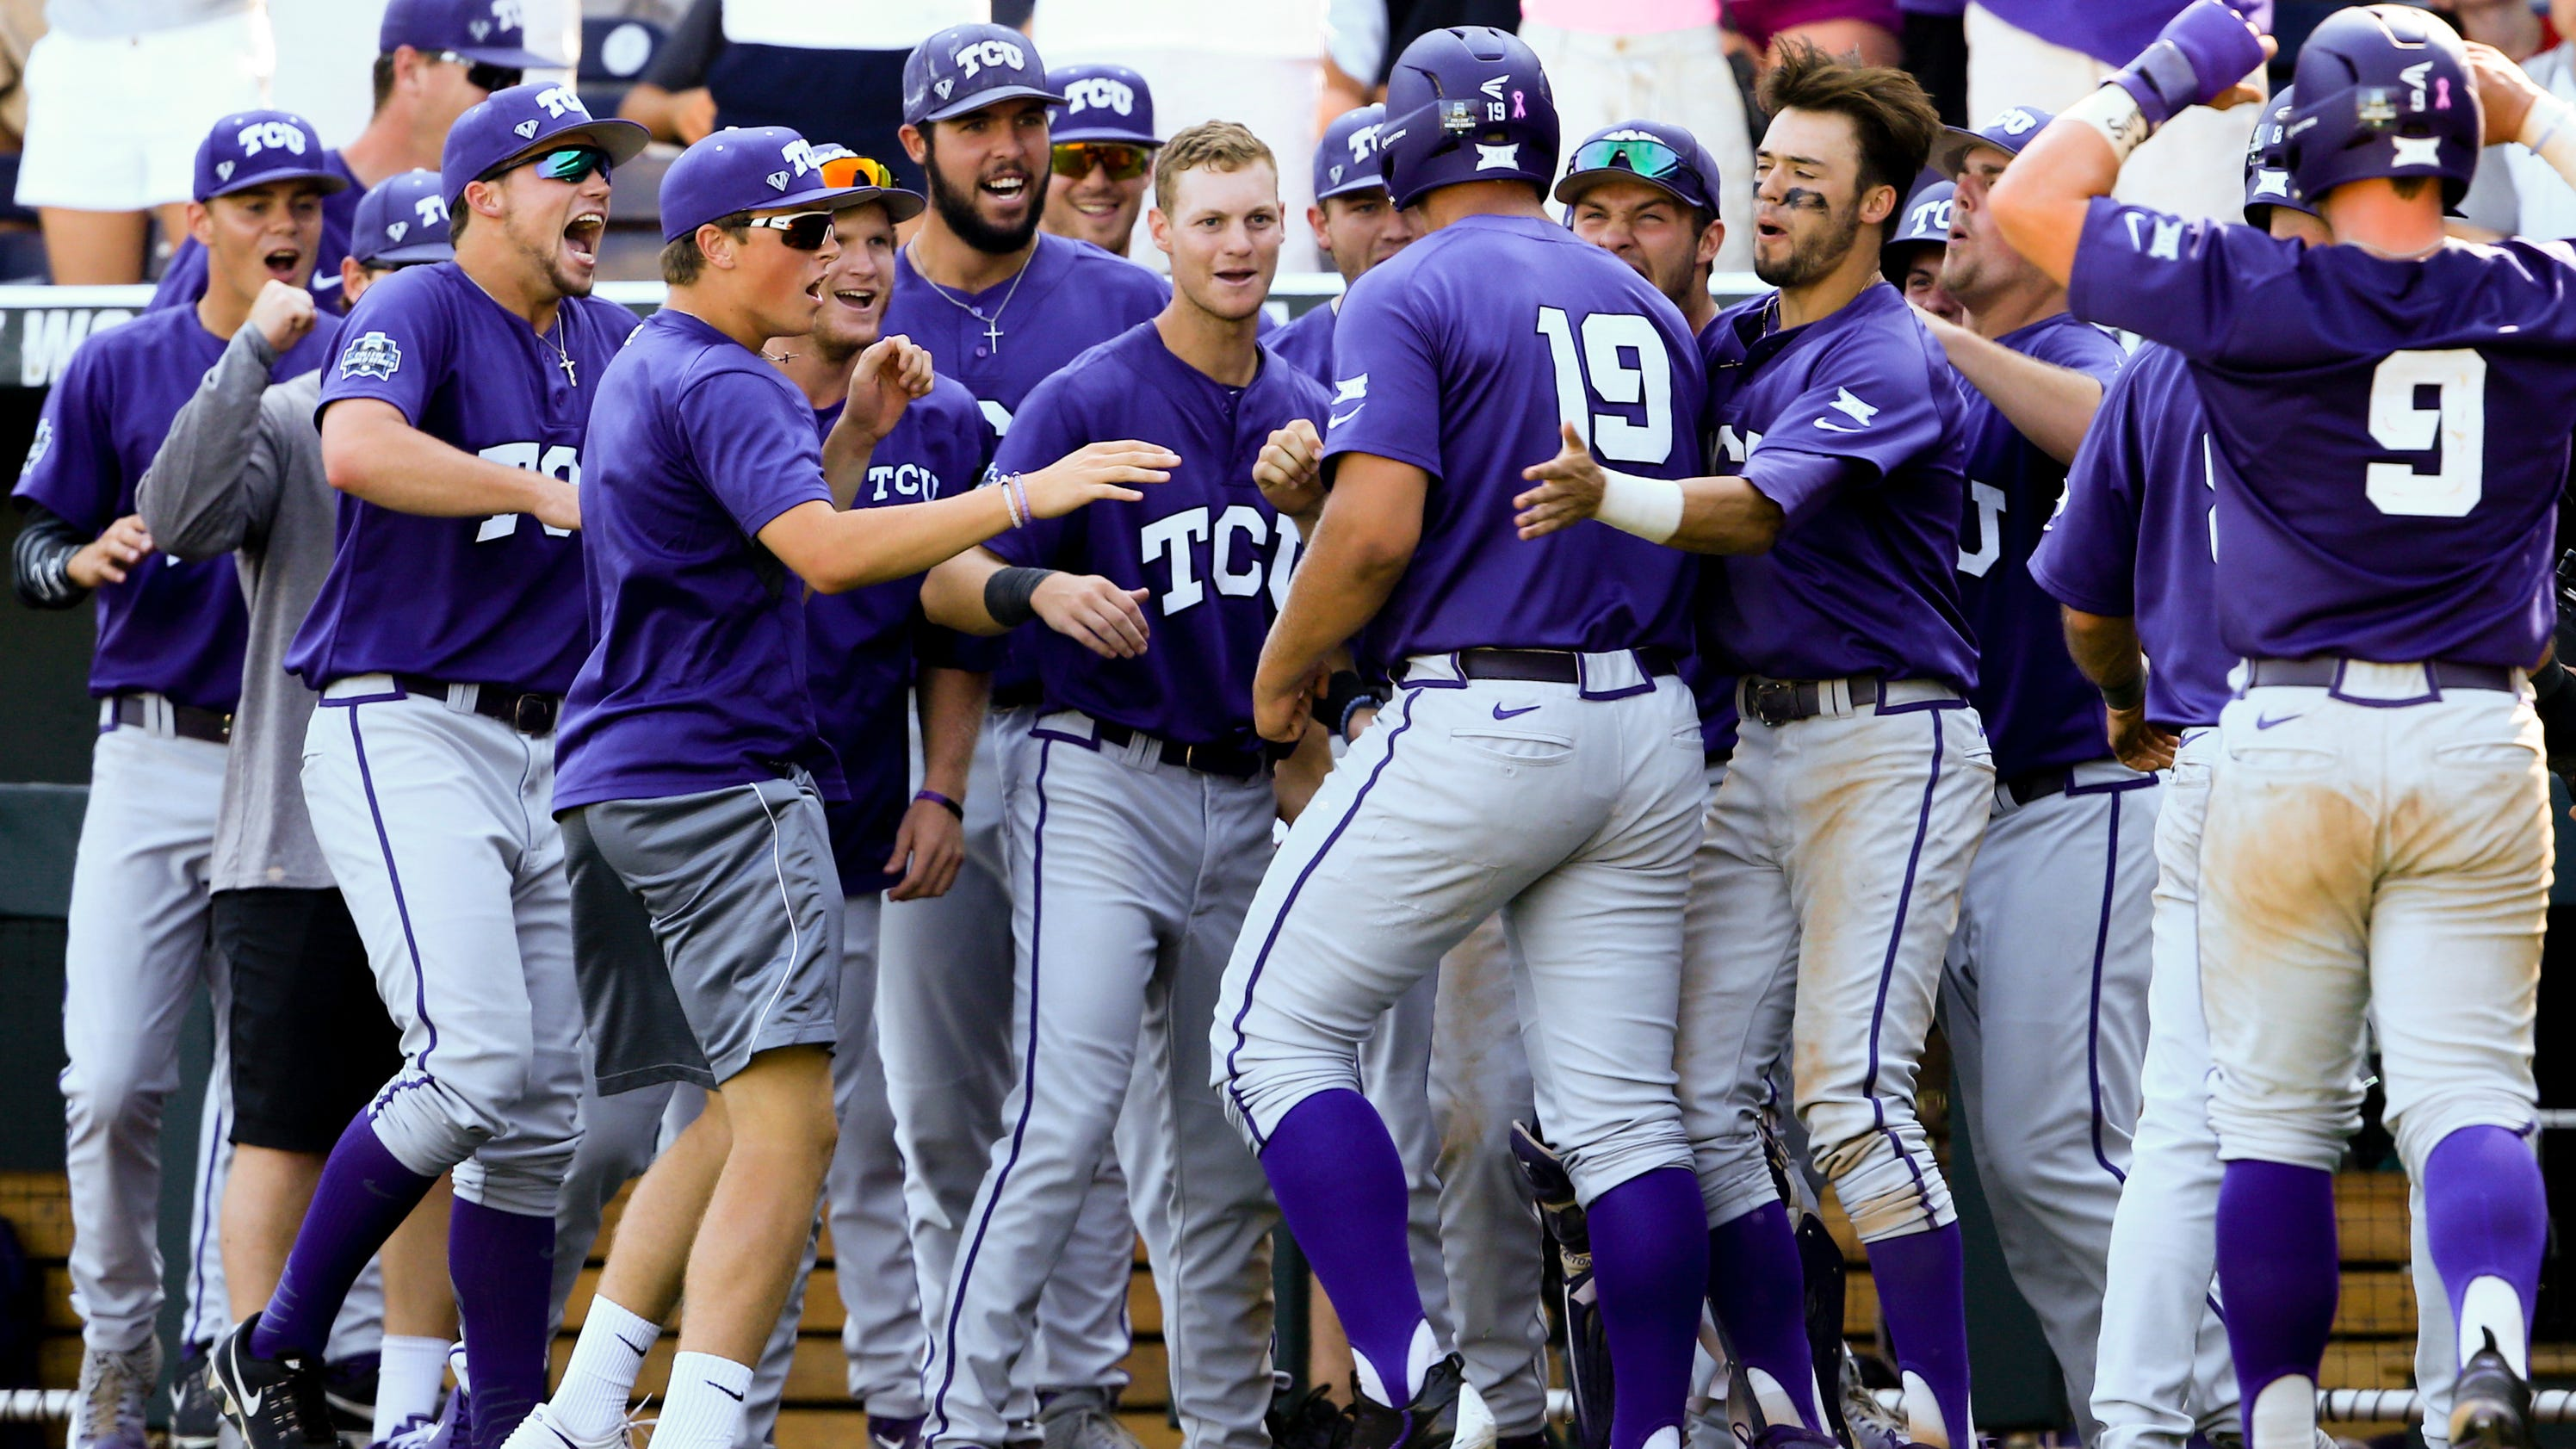 Fear the Frog: TCU pegged as college baseball's team to beat